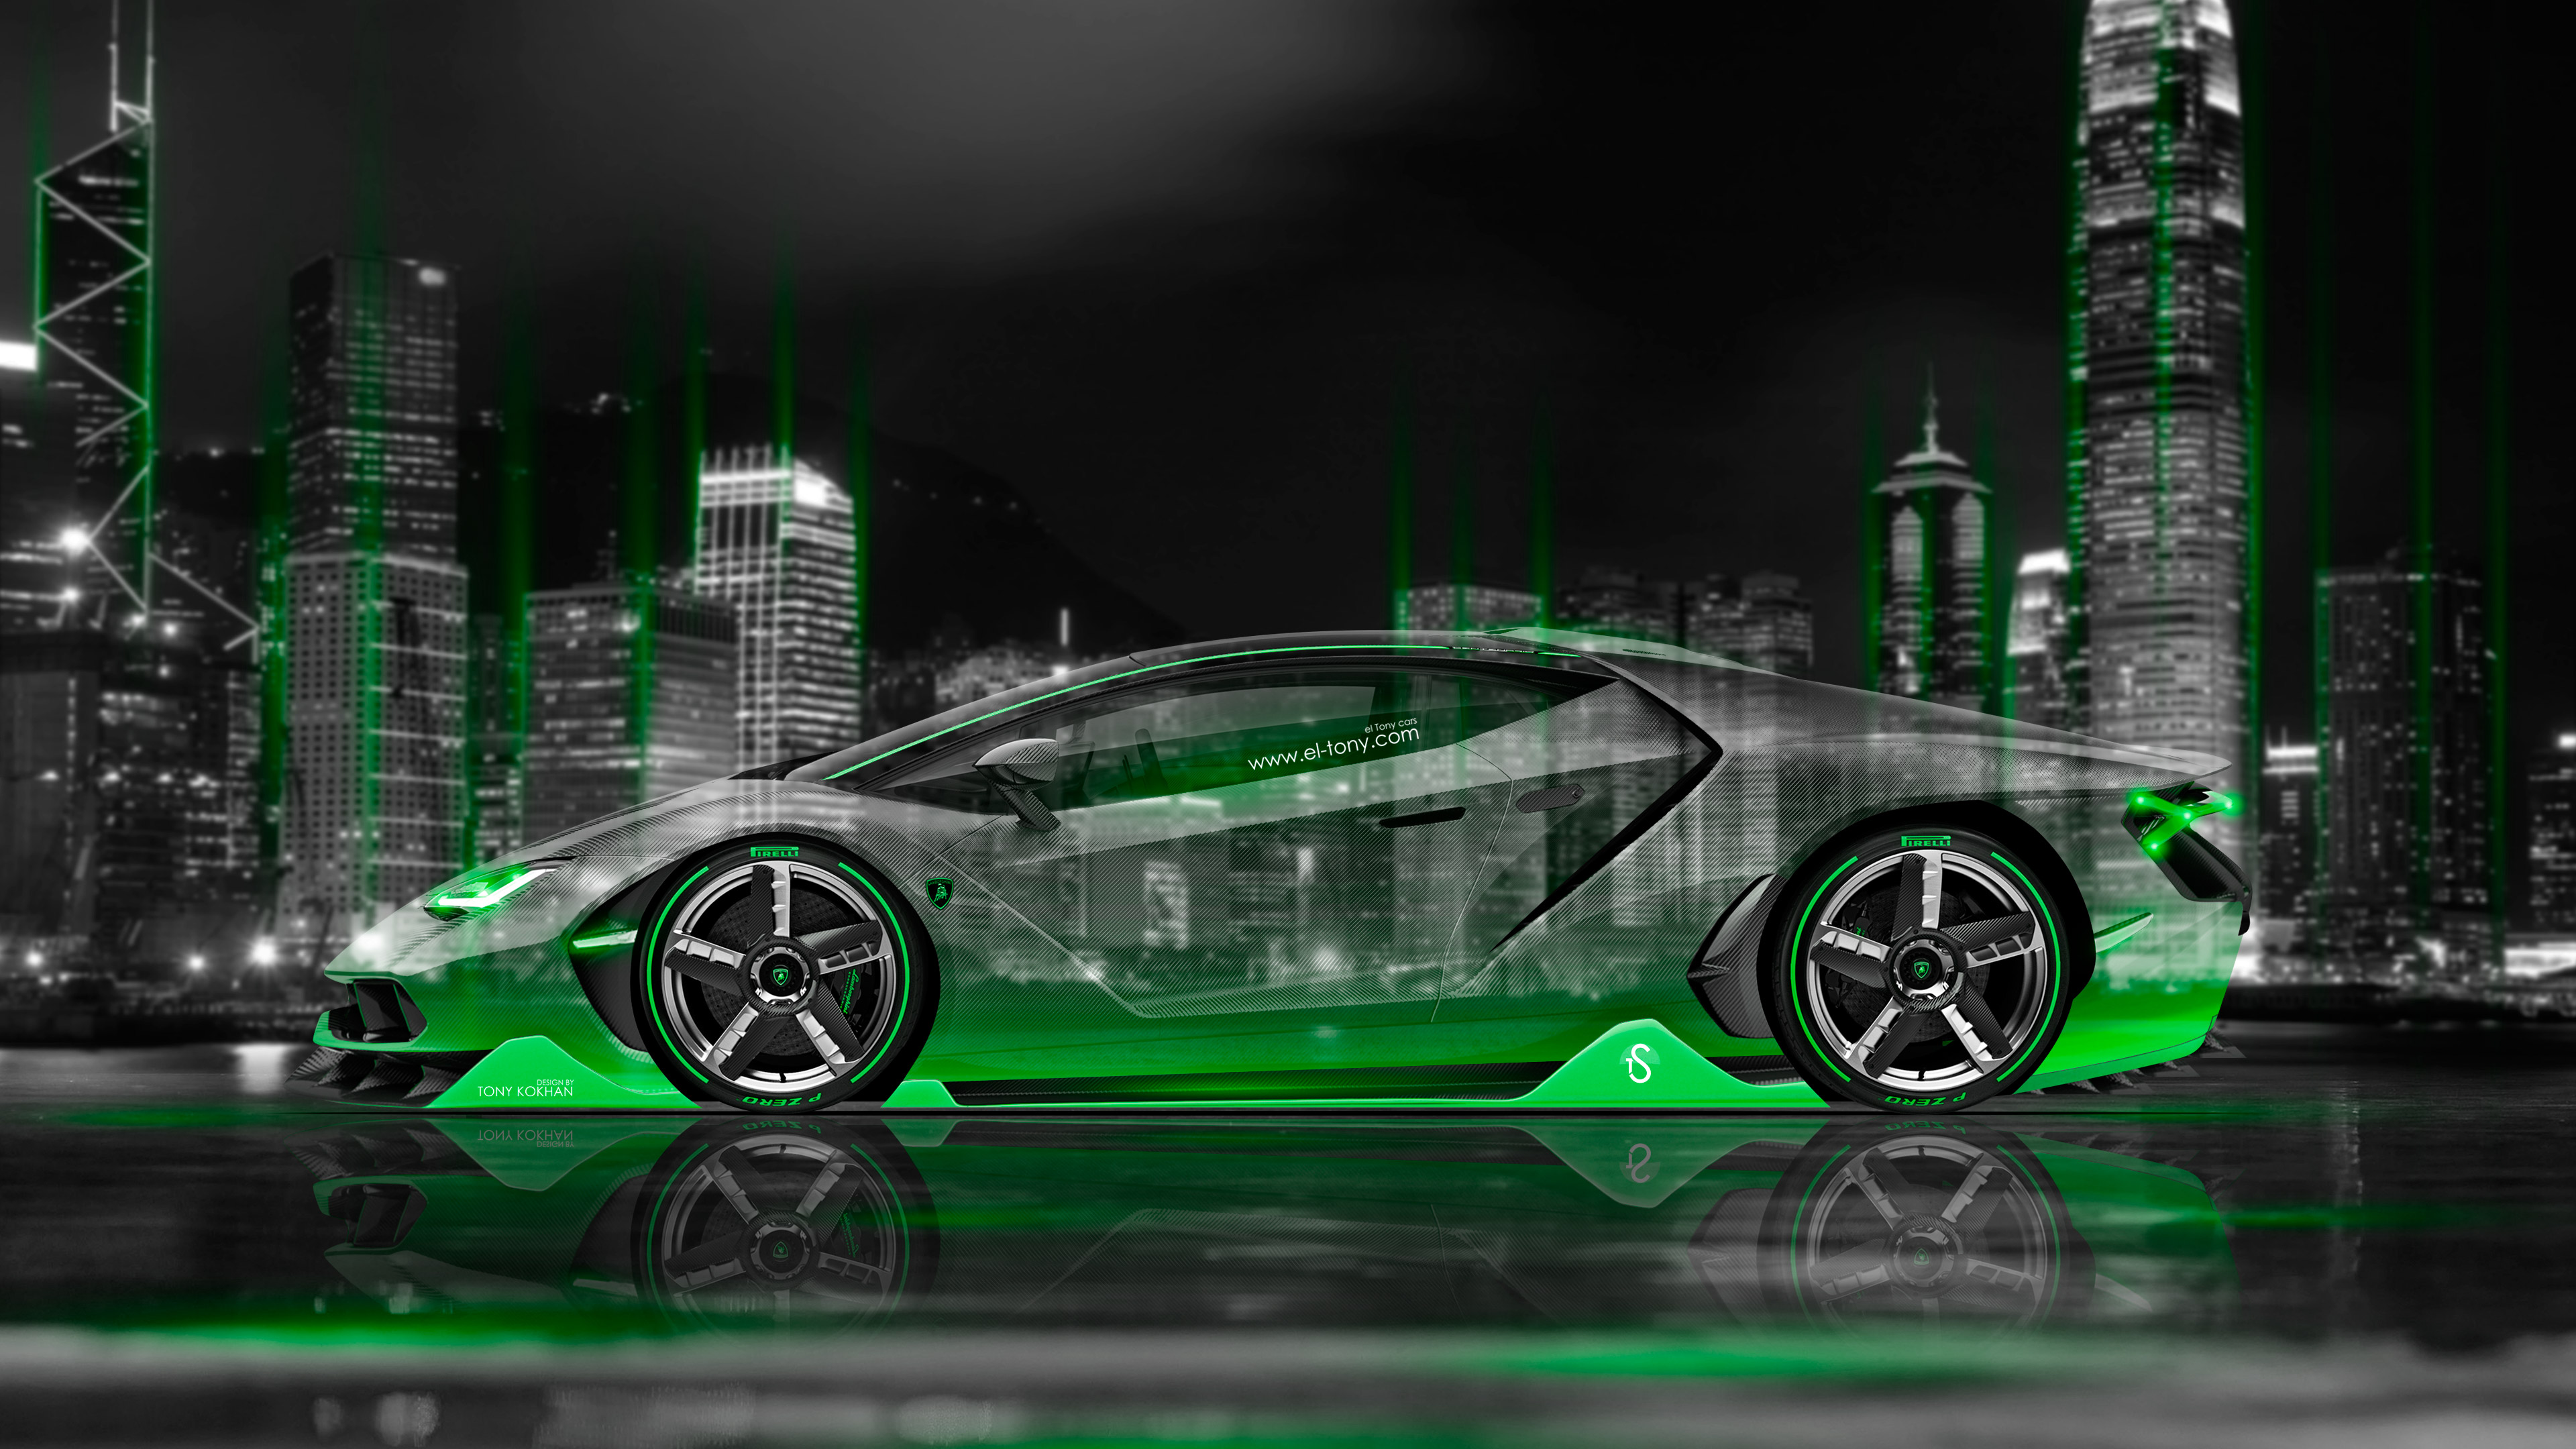 Lovely Lamborghini Centenario Side Crystal City Night Car 2016 Green Neon ...